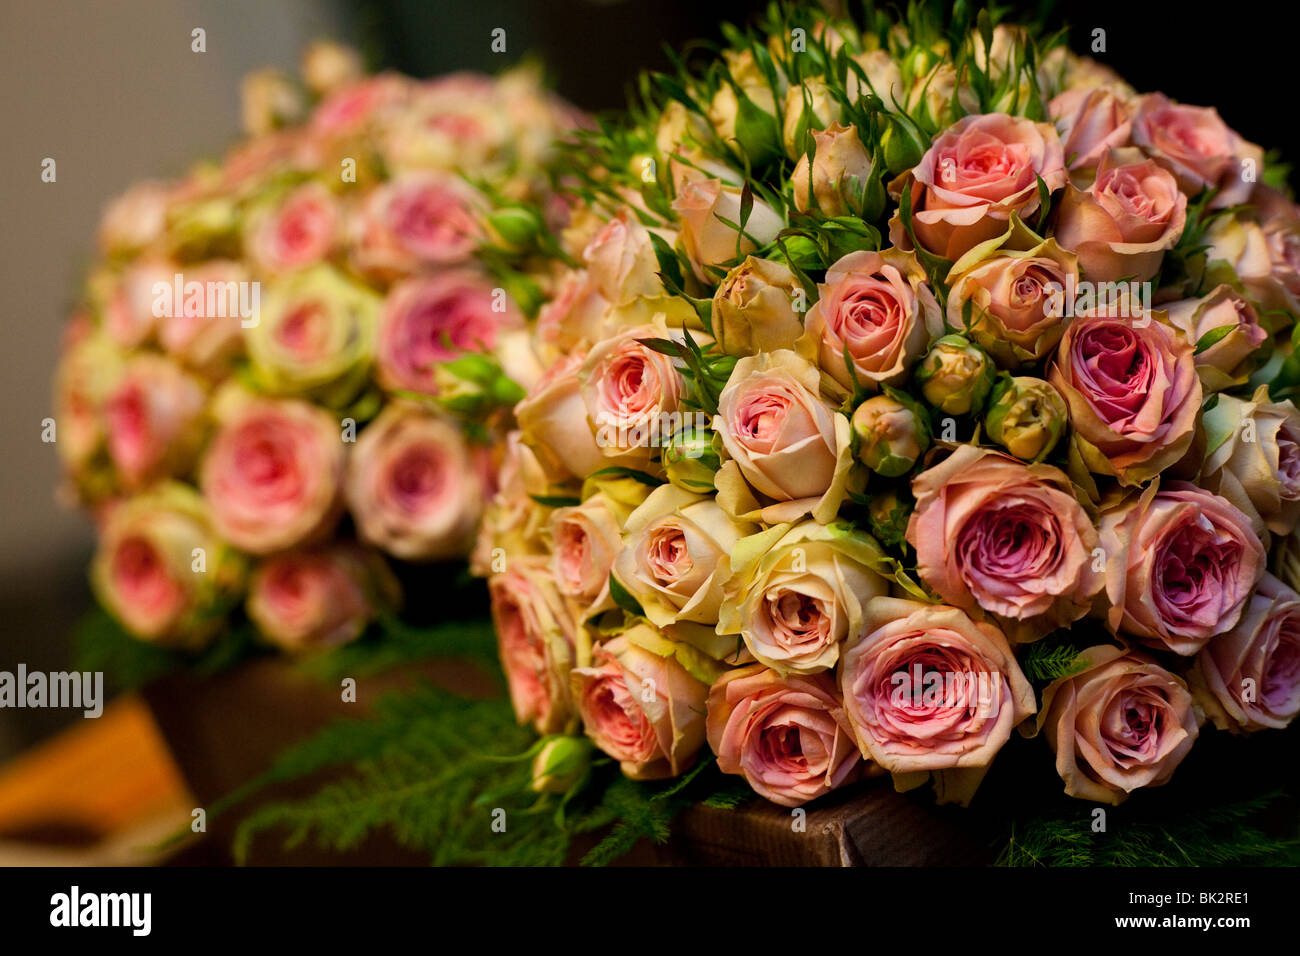 Two wedding bouquets with pink roses - Stock Image